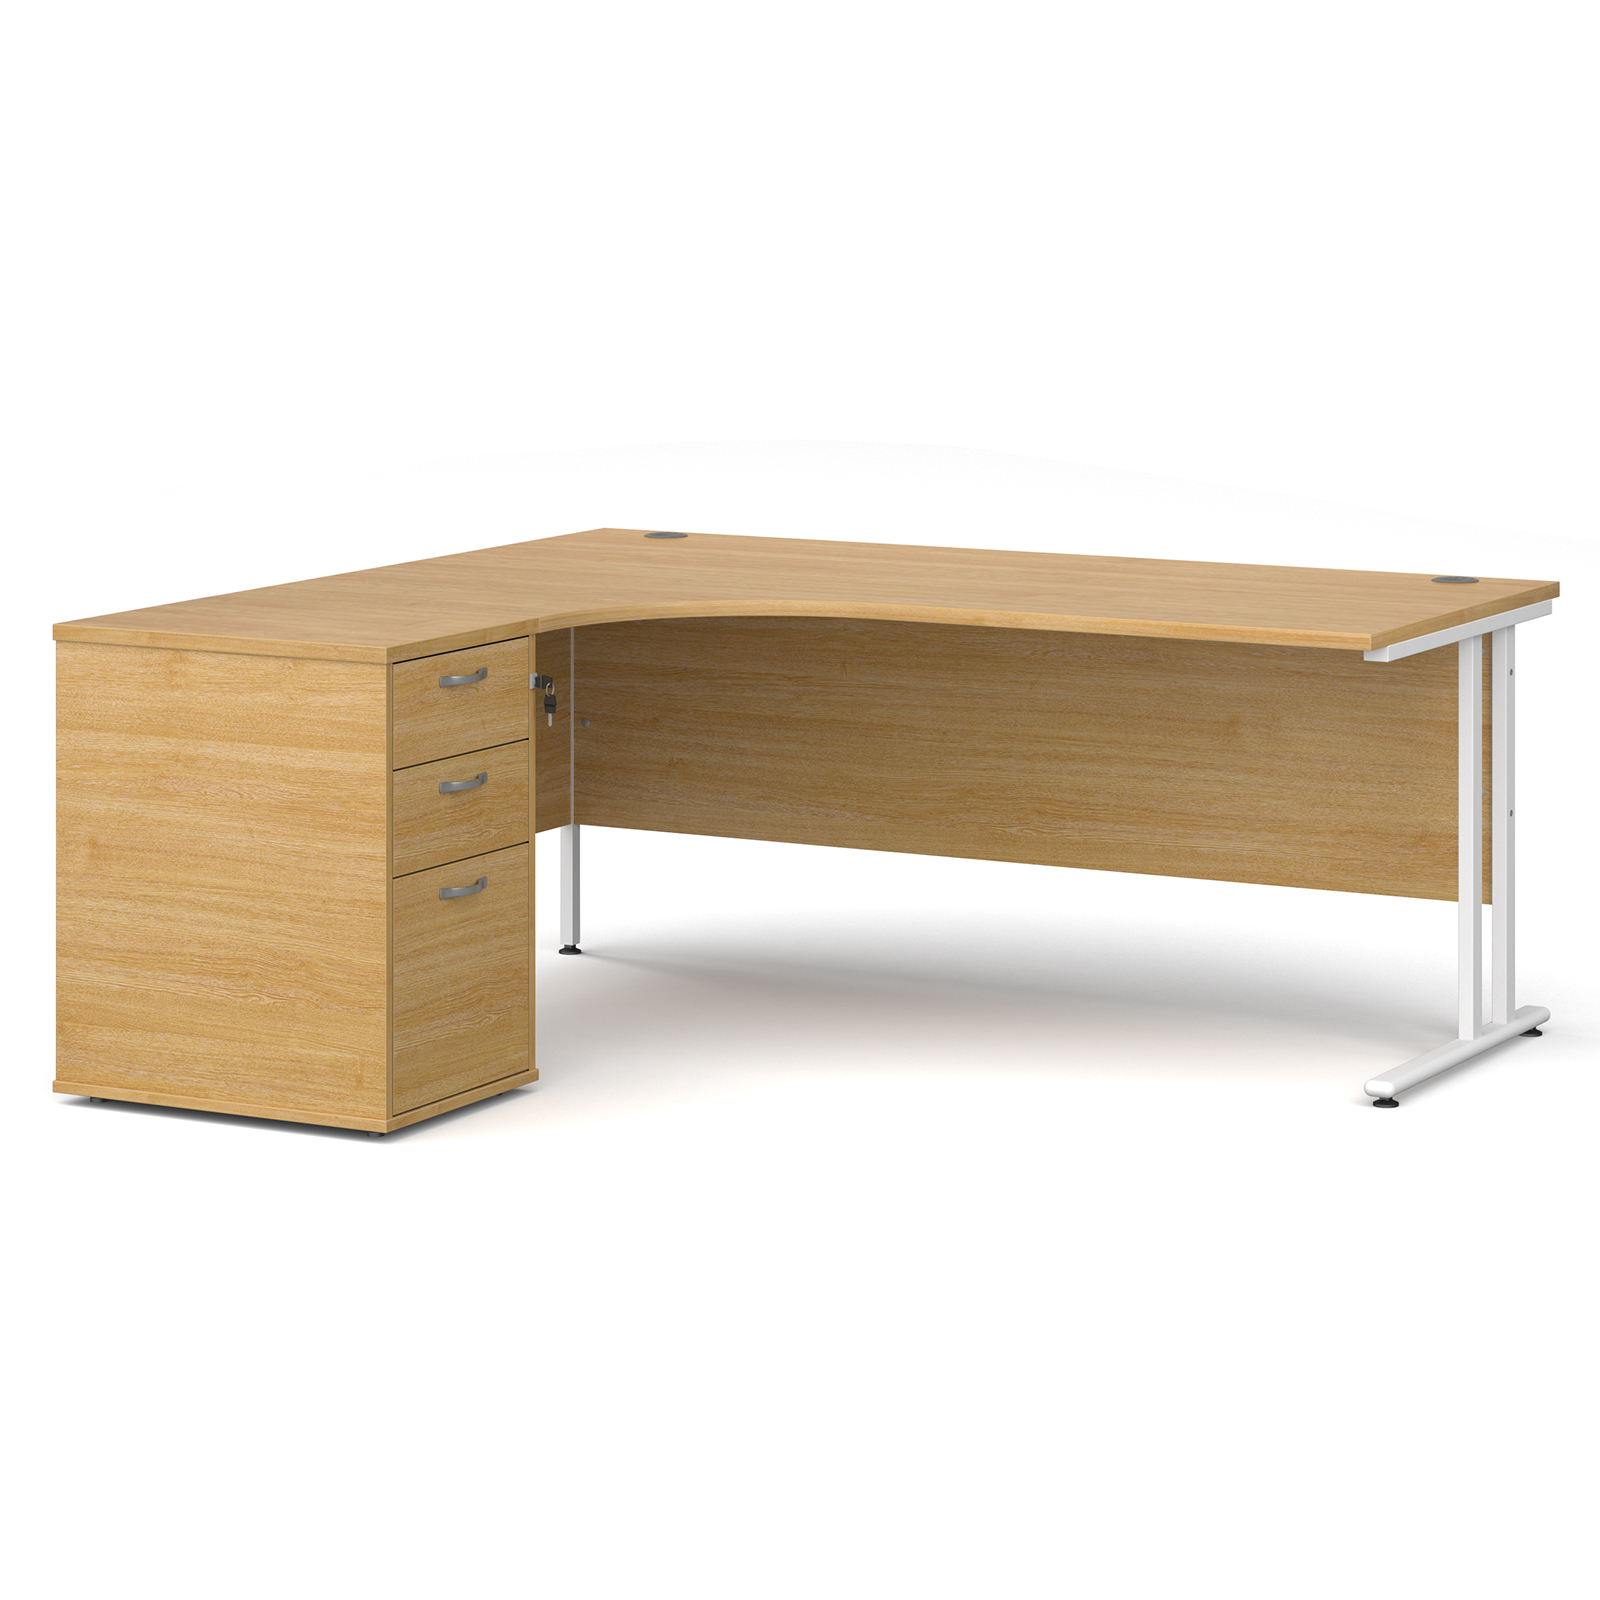 Left Handed Maestro 25 left hand ergonomic desk 1800mm with white cantilever frame and desk high pedestal - oak